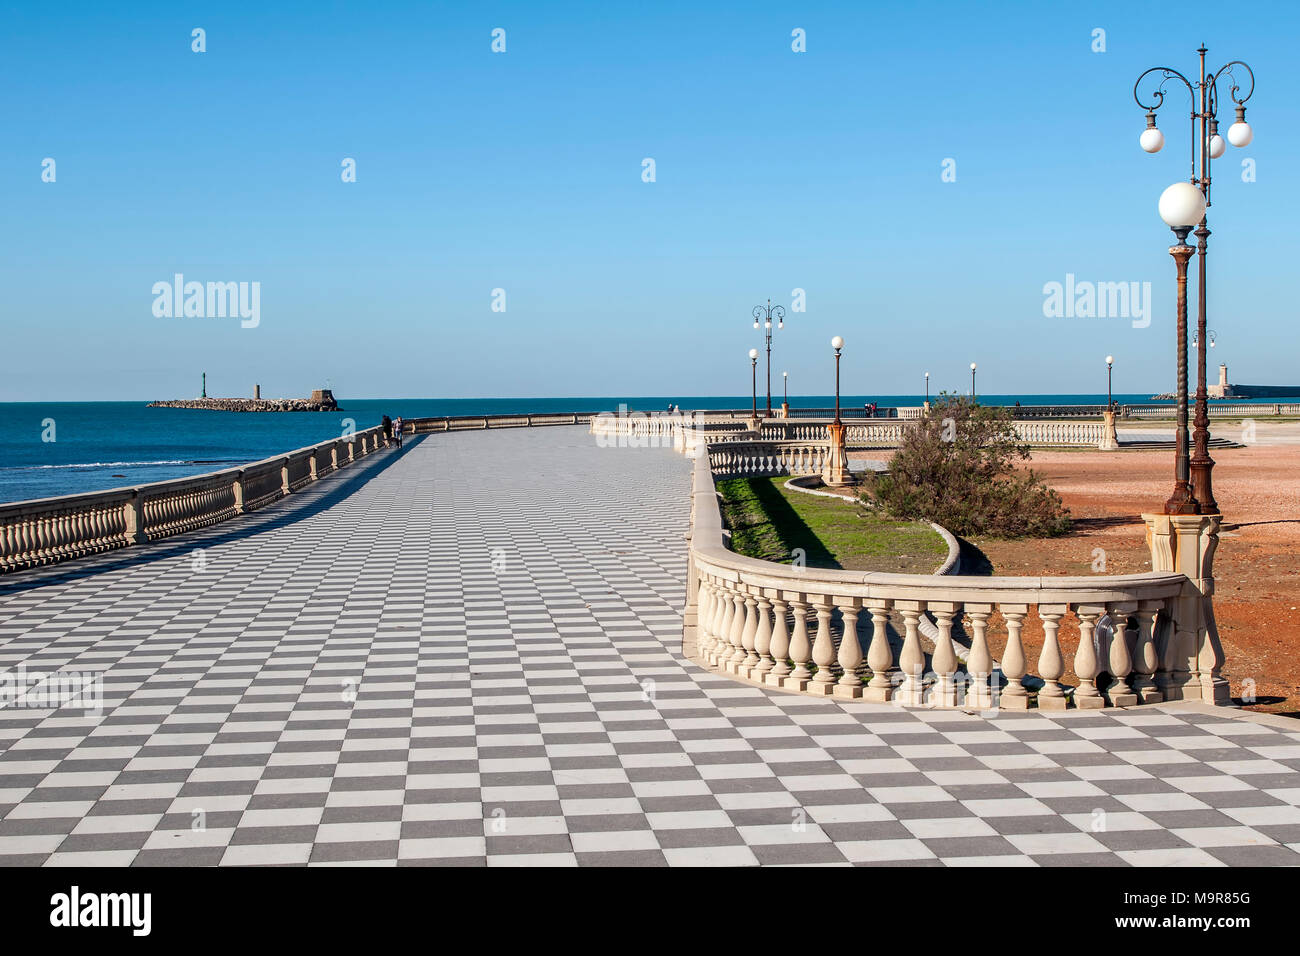 Beautiful view of the famous Terrazza Mascagni on the seafront of ...